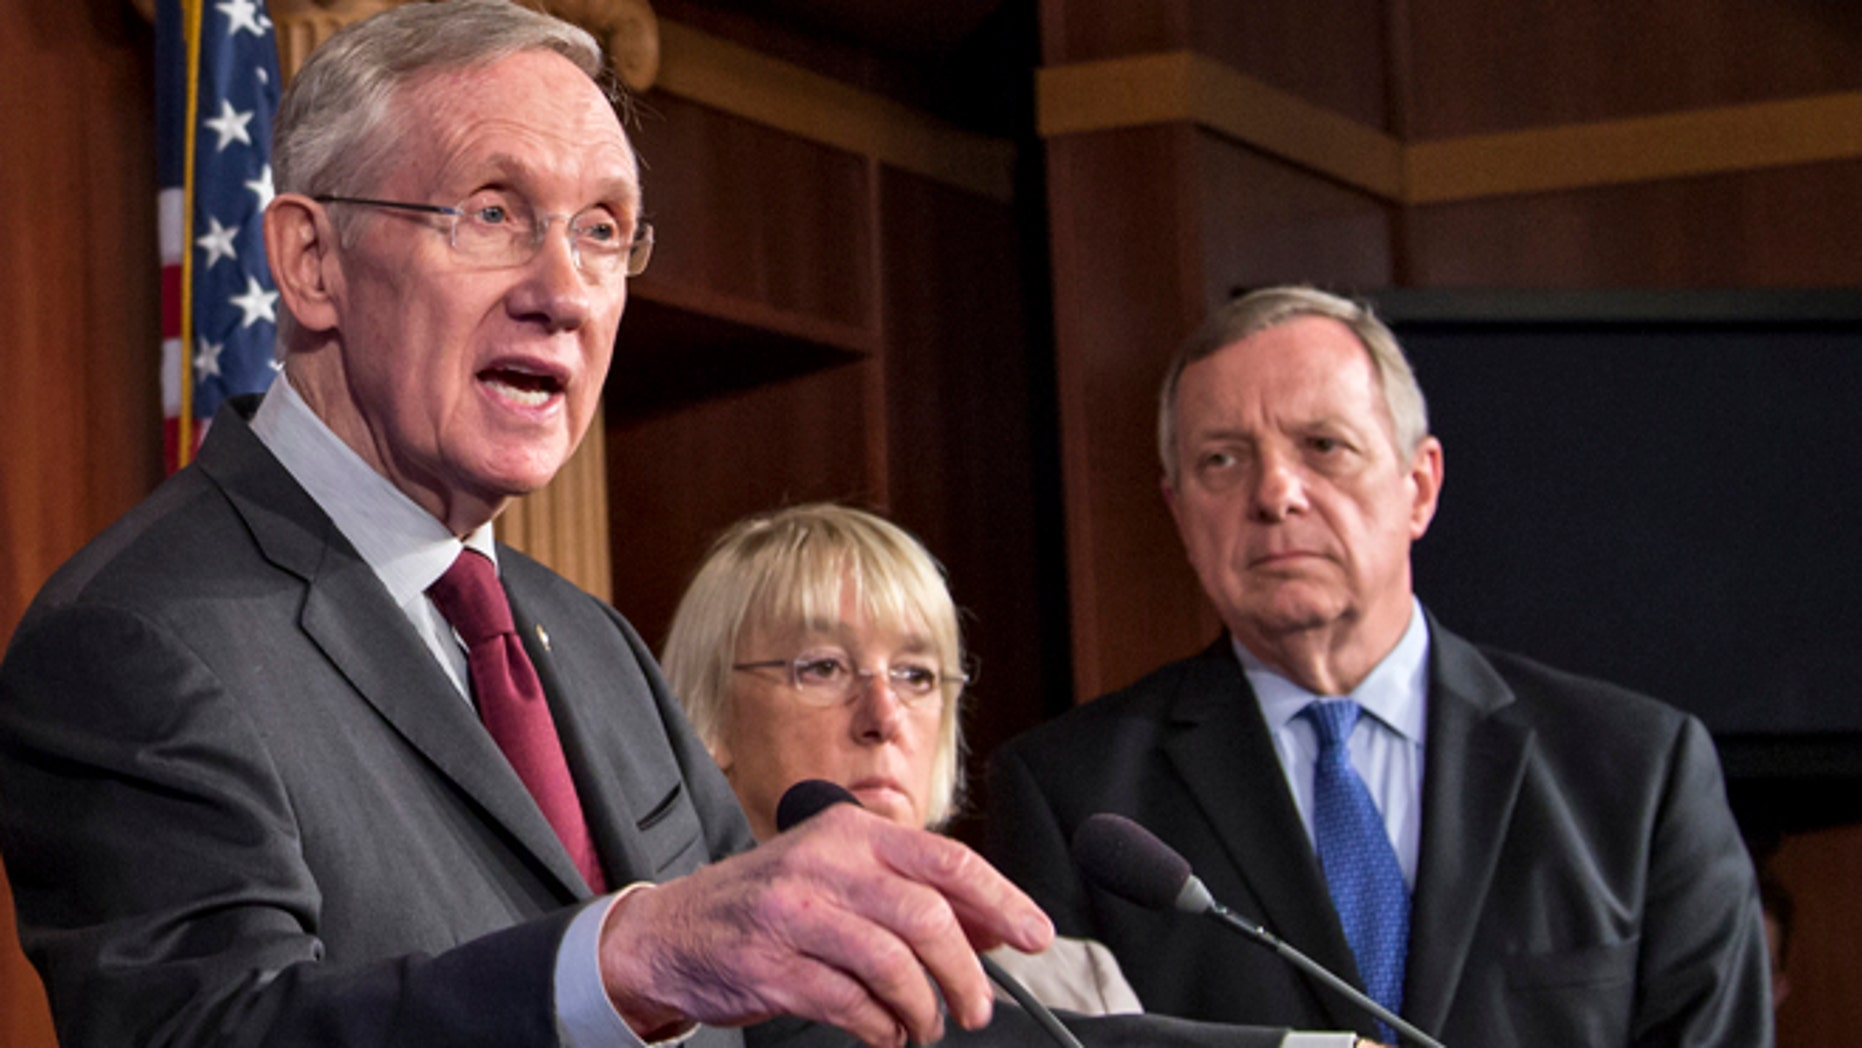 Sept. 30, 2013: Senate Majority Leader Harry Reid of Nev., Senate Budget Committee Chair Sen. Patty Murray, D-Wash. and Senate Majority Whip Richard Durbin of Ill. speak during a news conference on Capitol Hill.